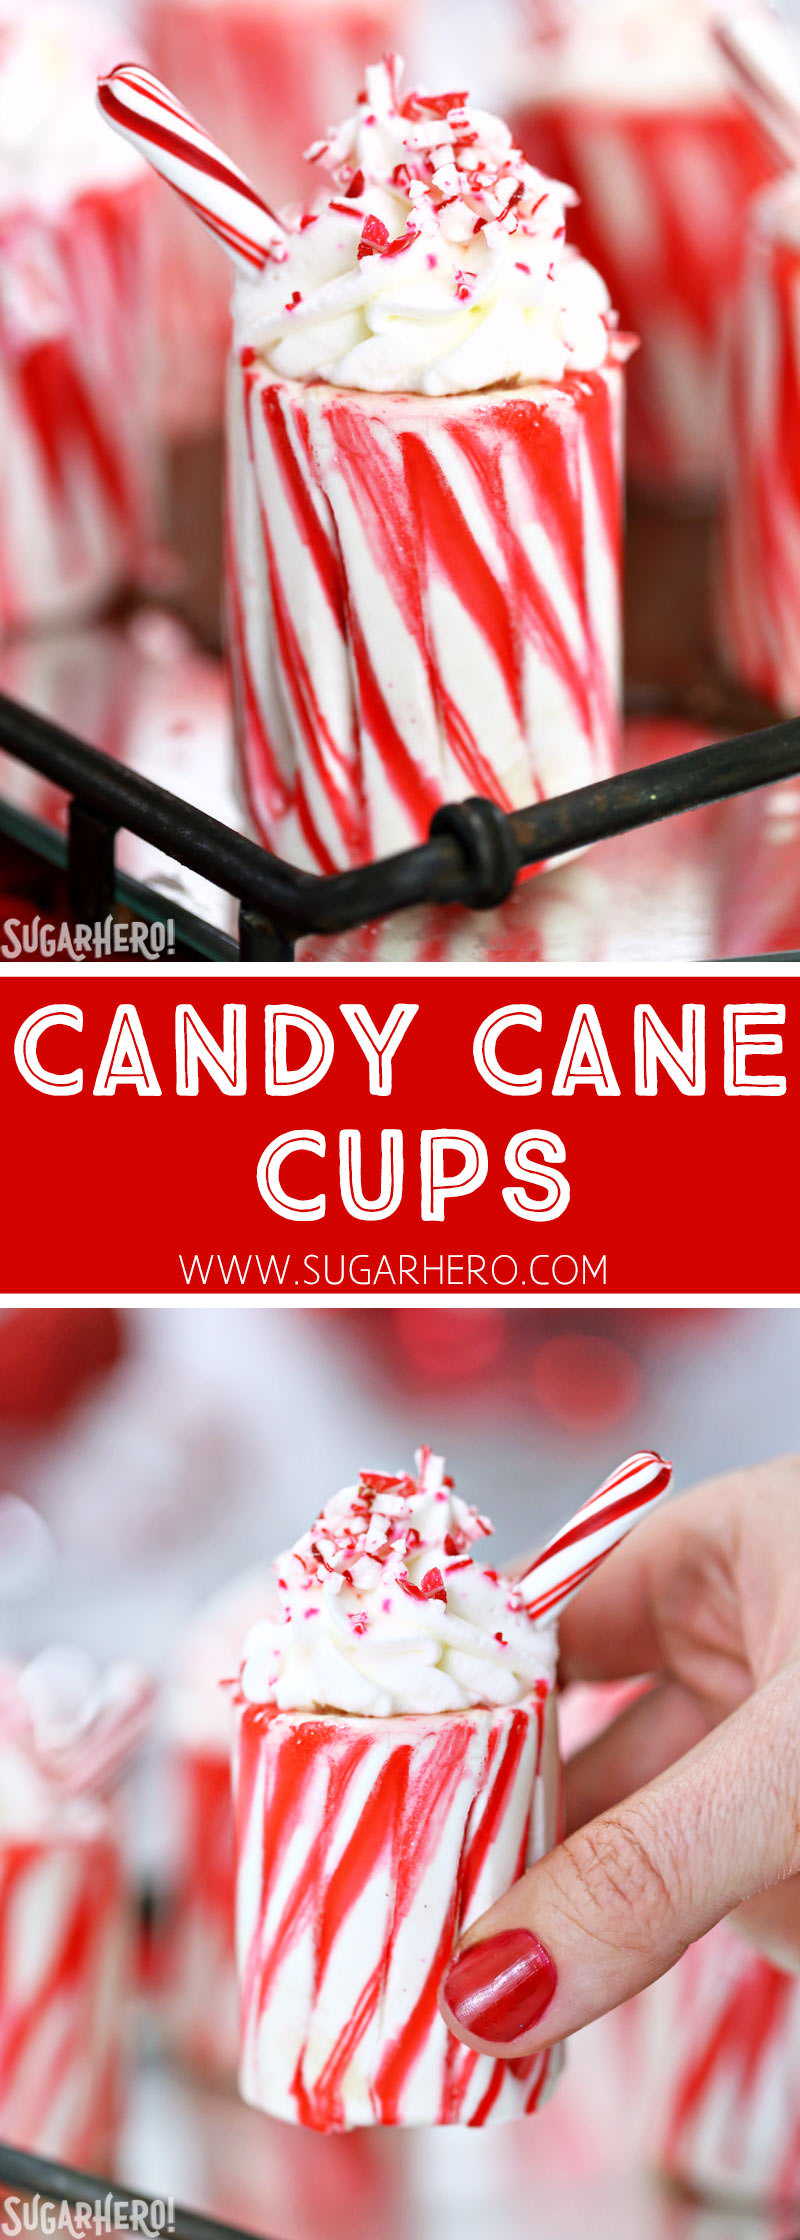 Candy Cane Cups - easy homemade candy cane shot glasses | From SugarHero.com